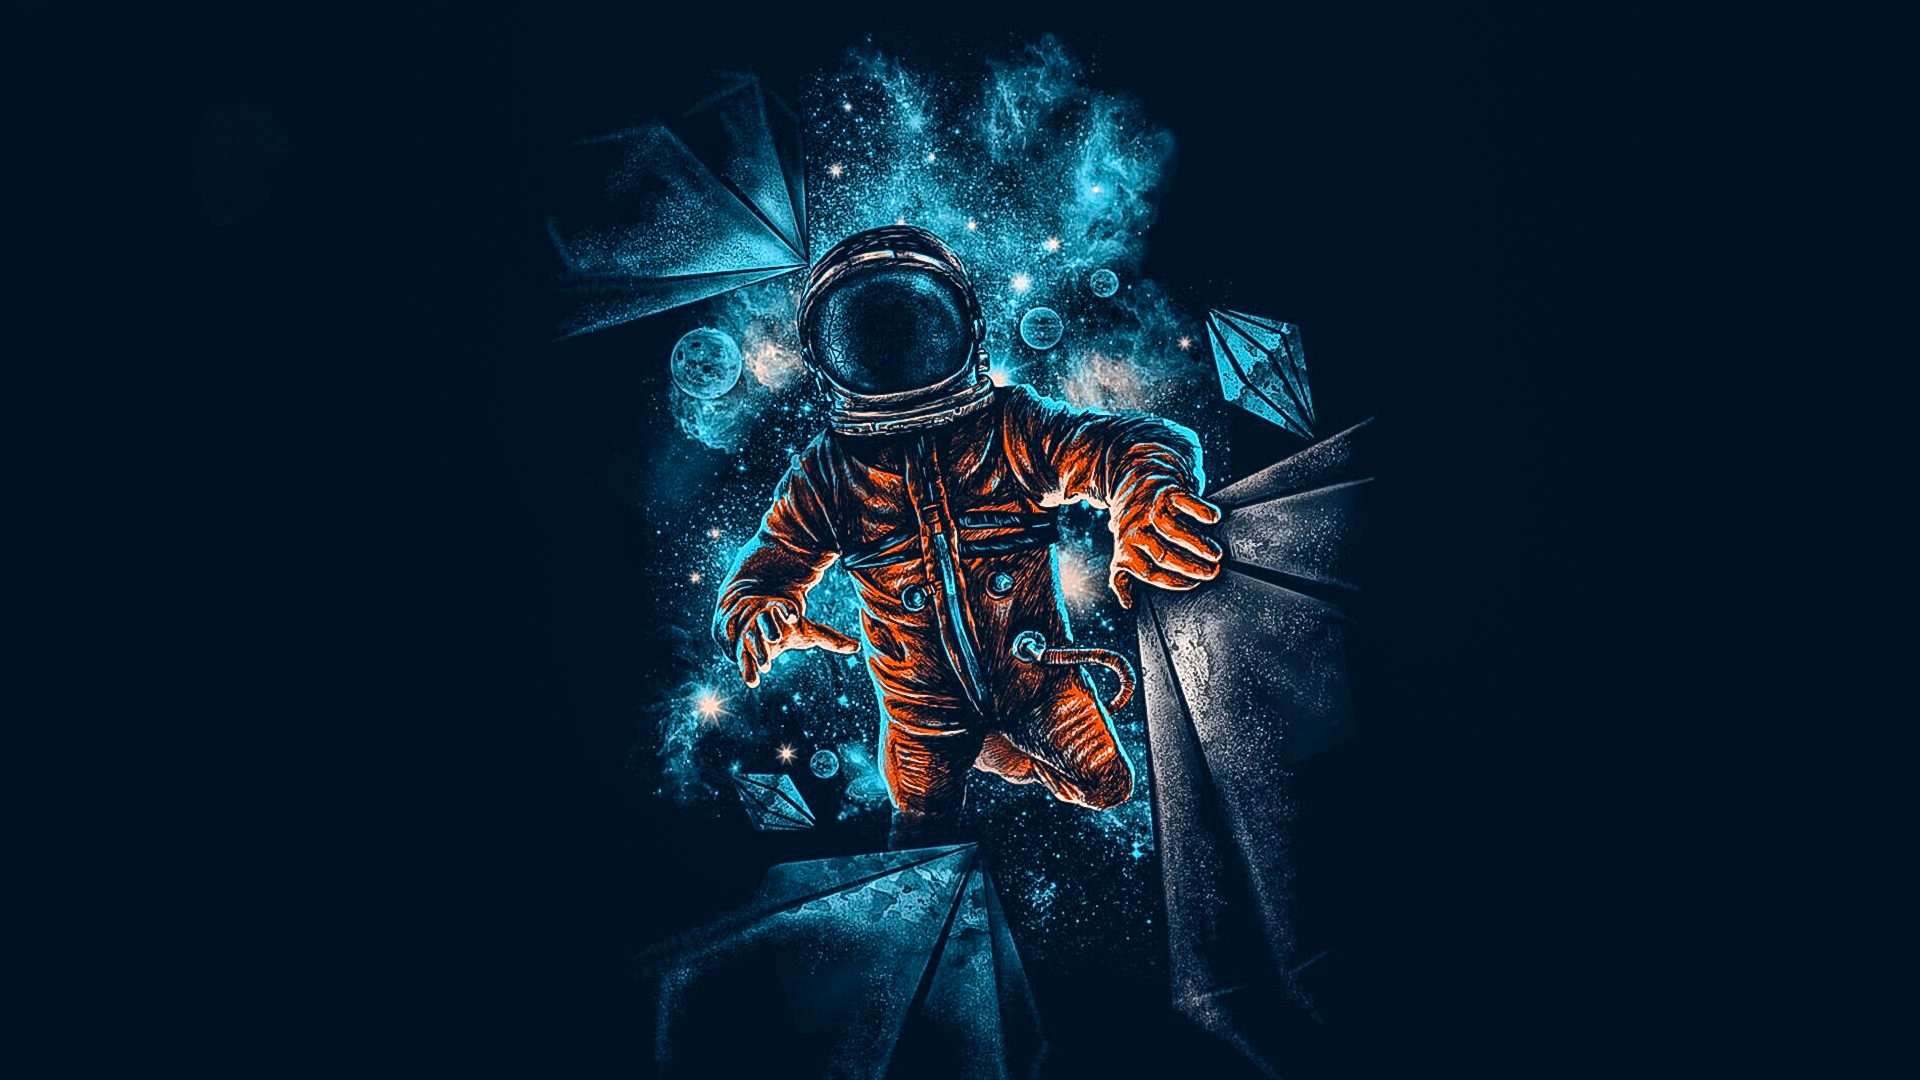 Hd Wallpapers For Samsung Galaxy S6 Edge Wallpapers Part 2: Artistic Spaceman Blue Orange 4K Wallpaper